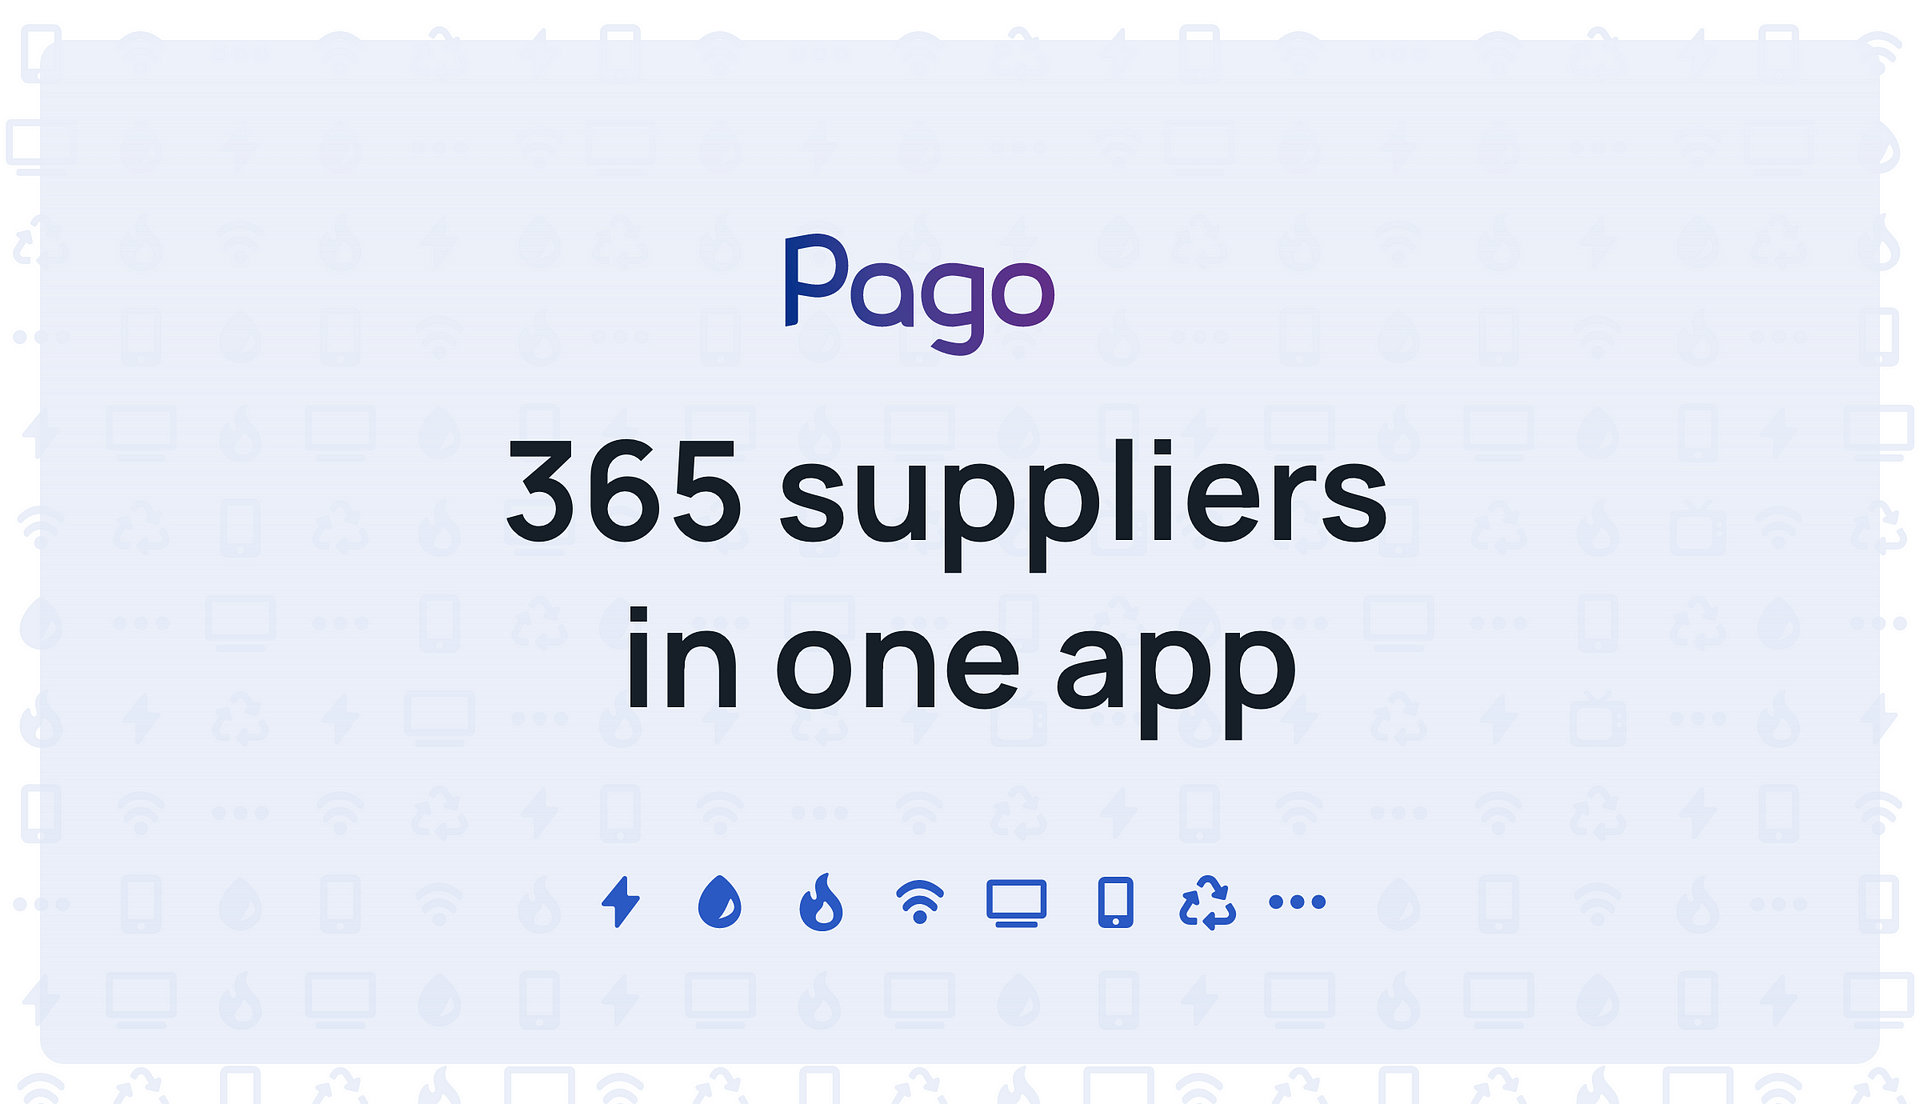 All about the available suppliers in Pago. Types of suppliers